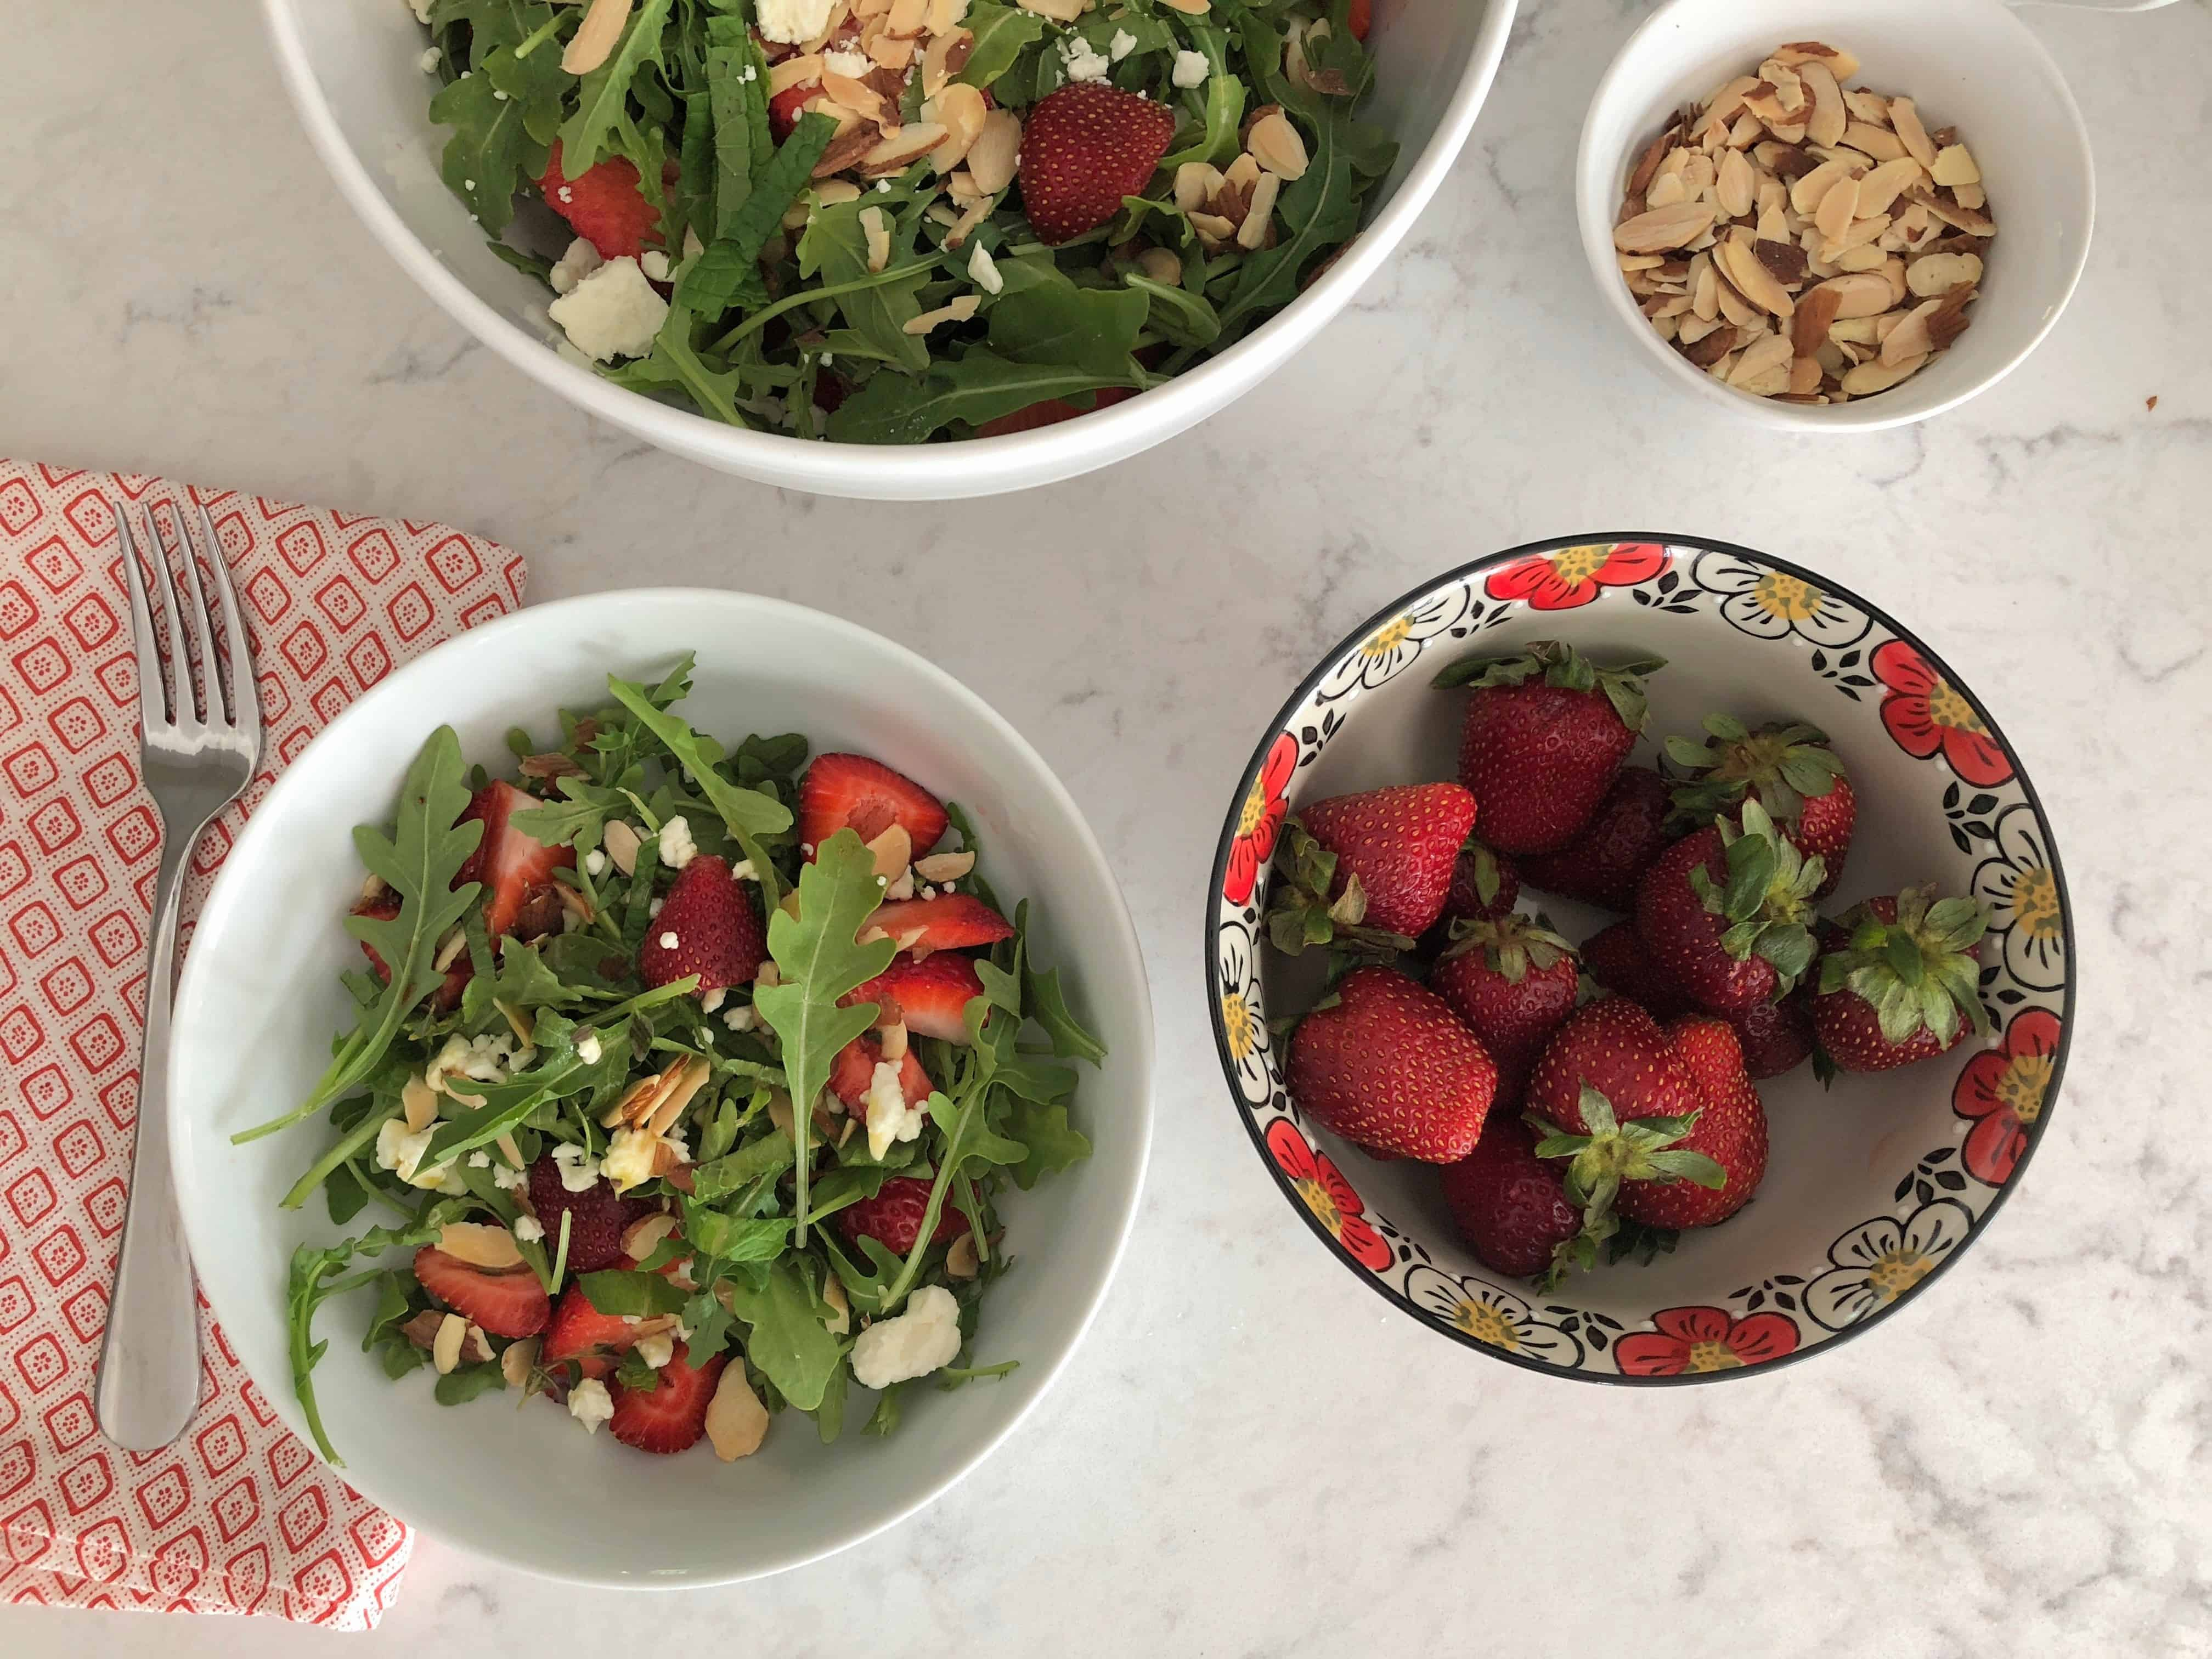 strawberry salad from up above